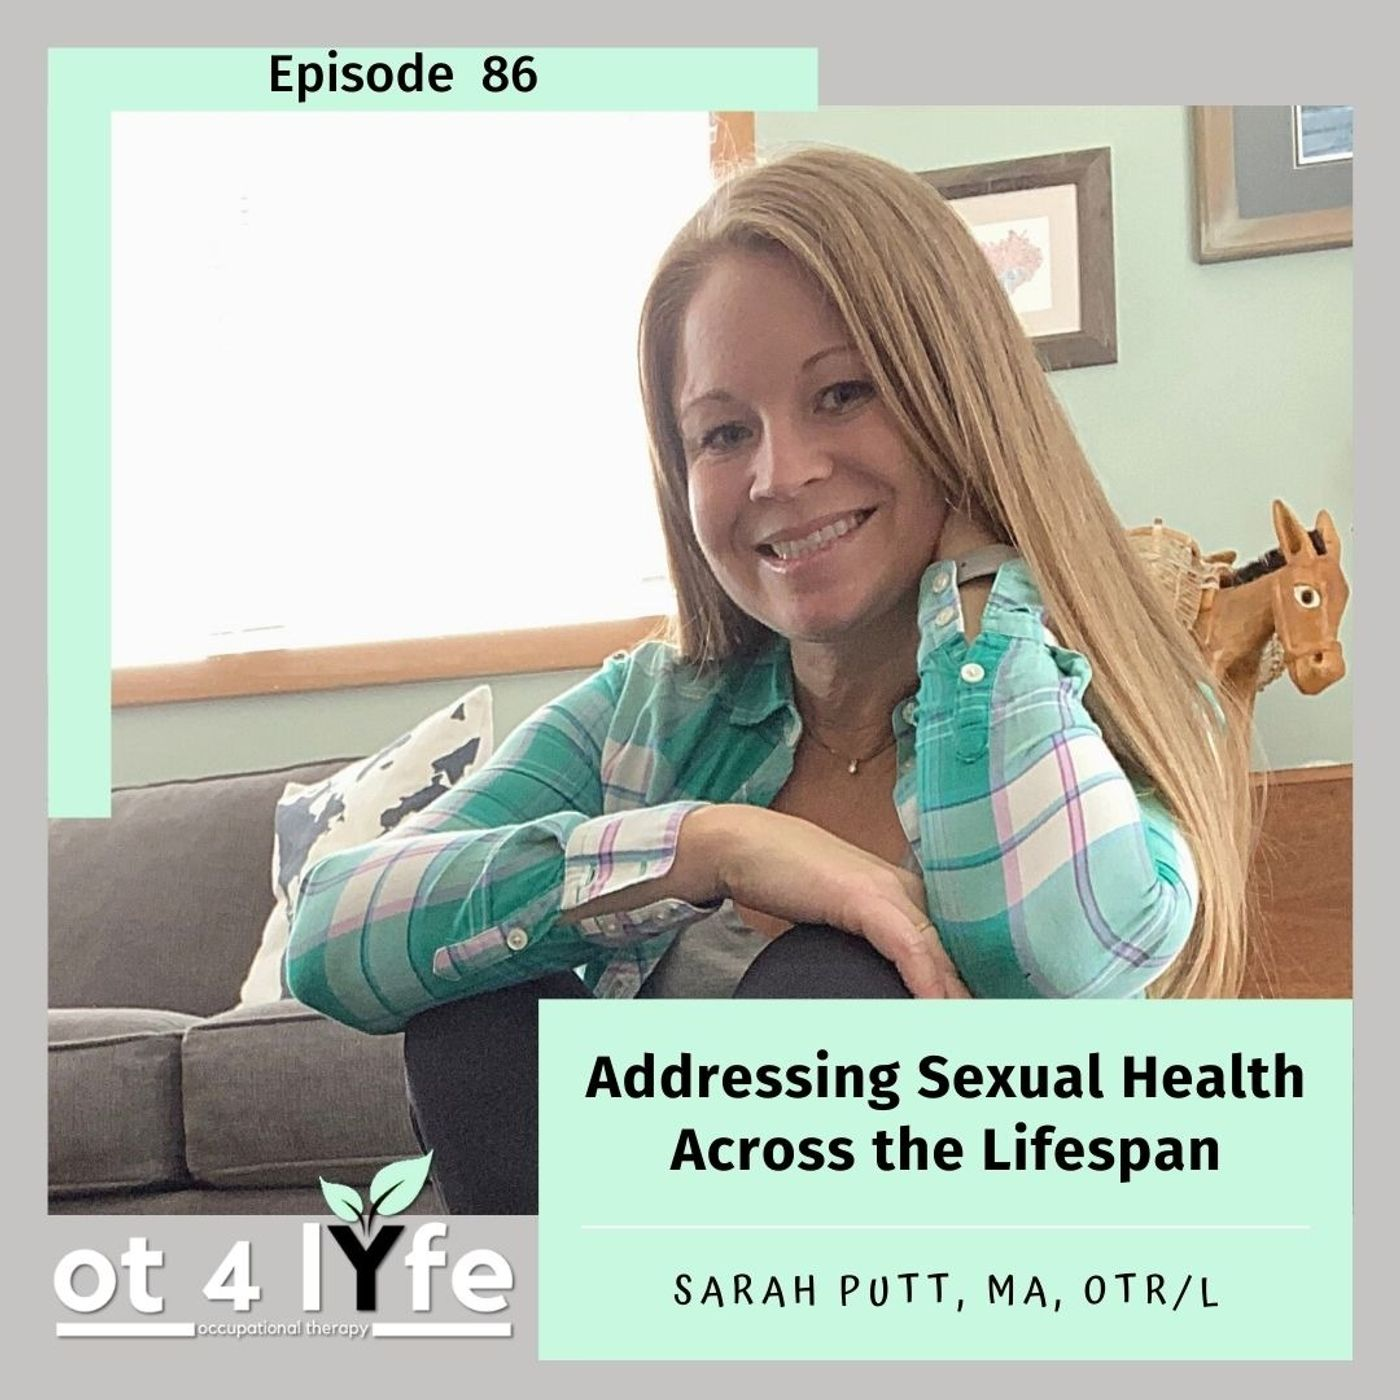 Addressing Sexual Health Across the Lifespan